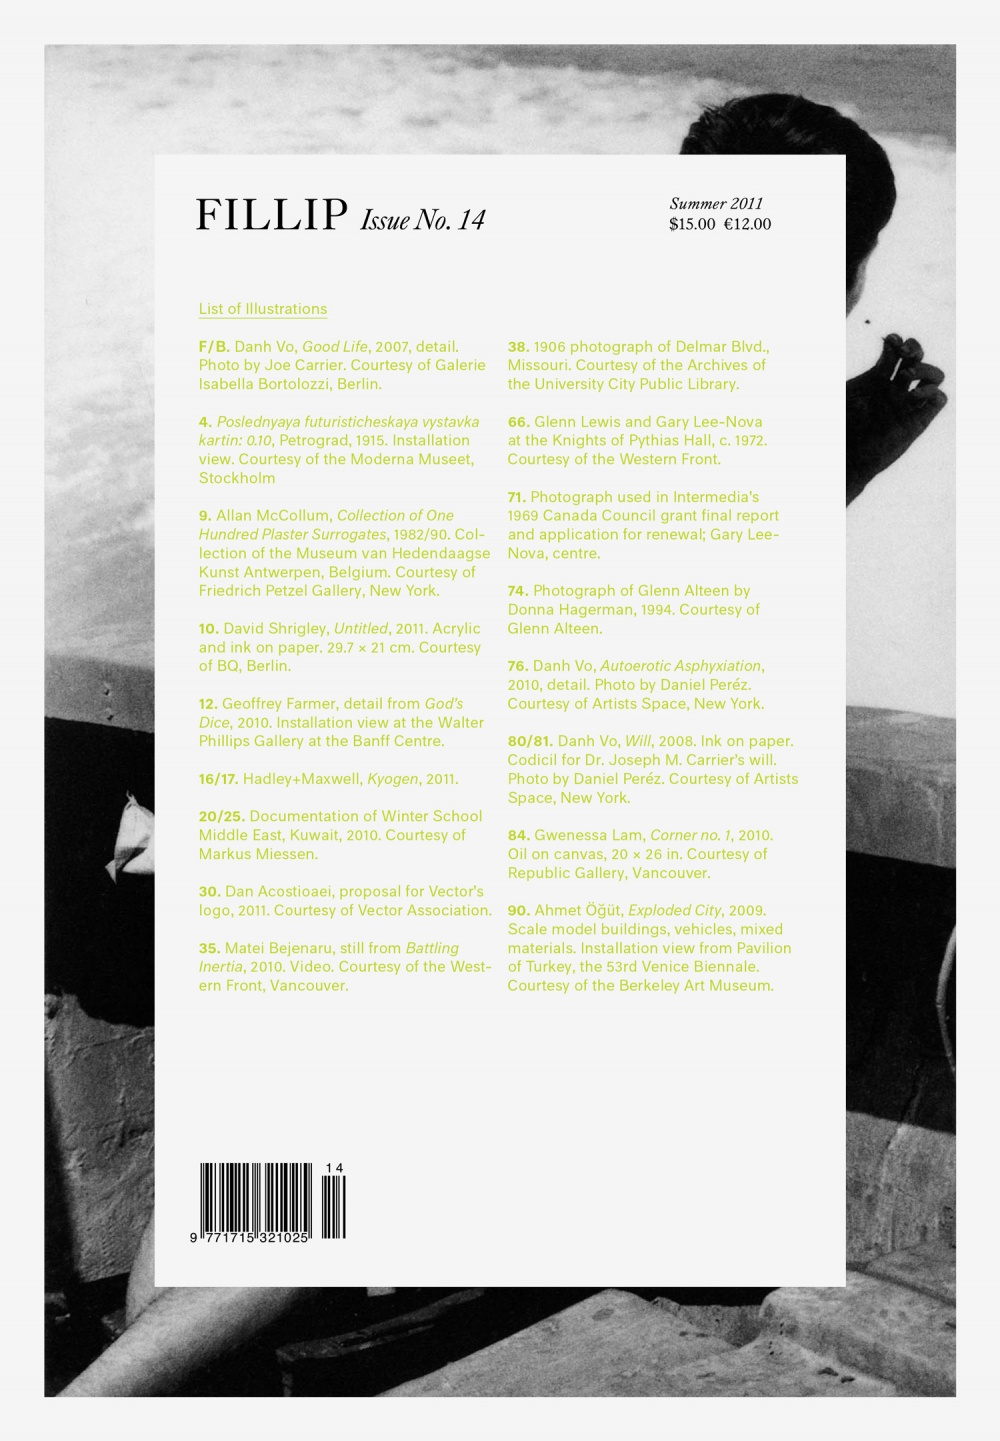 Fillip Issue No. 14